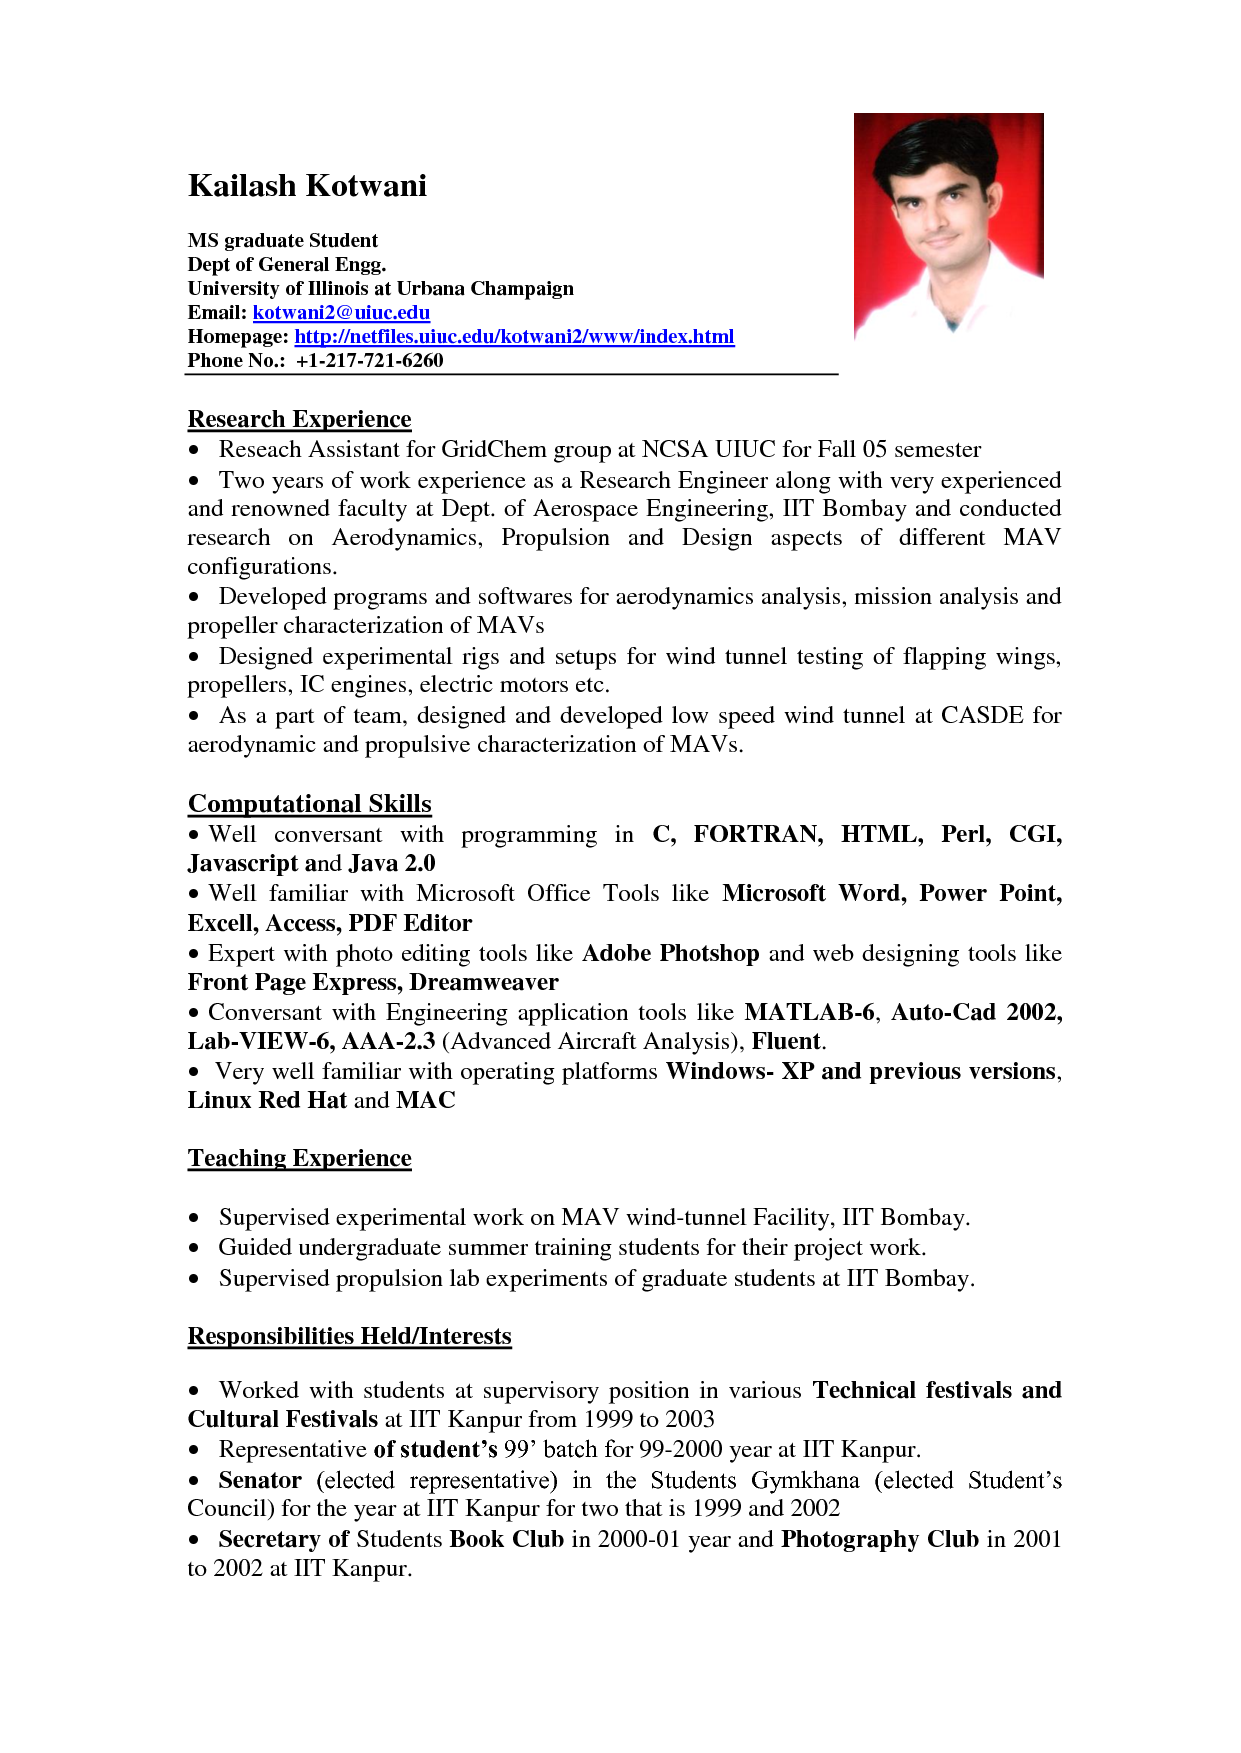 Marvelous High School Student Resume Examples No Work Experience No Work Experience  Resume Content. How To Write A Resume Resume . Inside Examples Of Experience For Resume